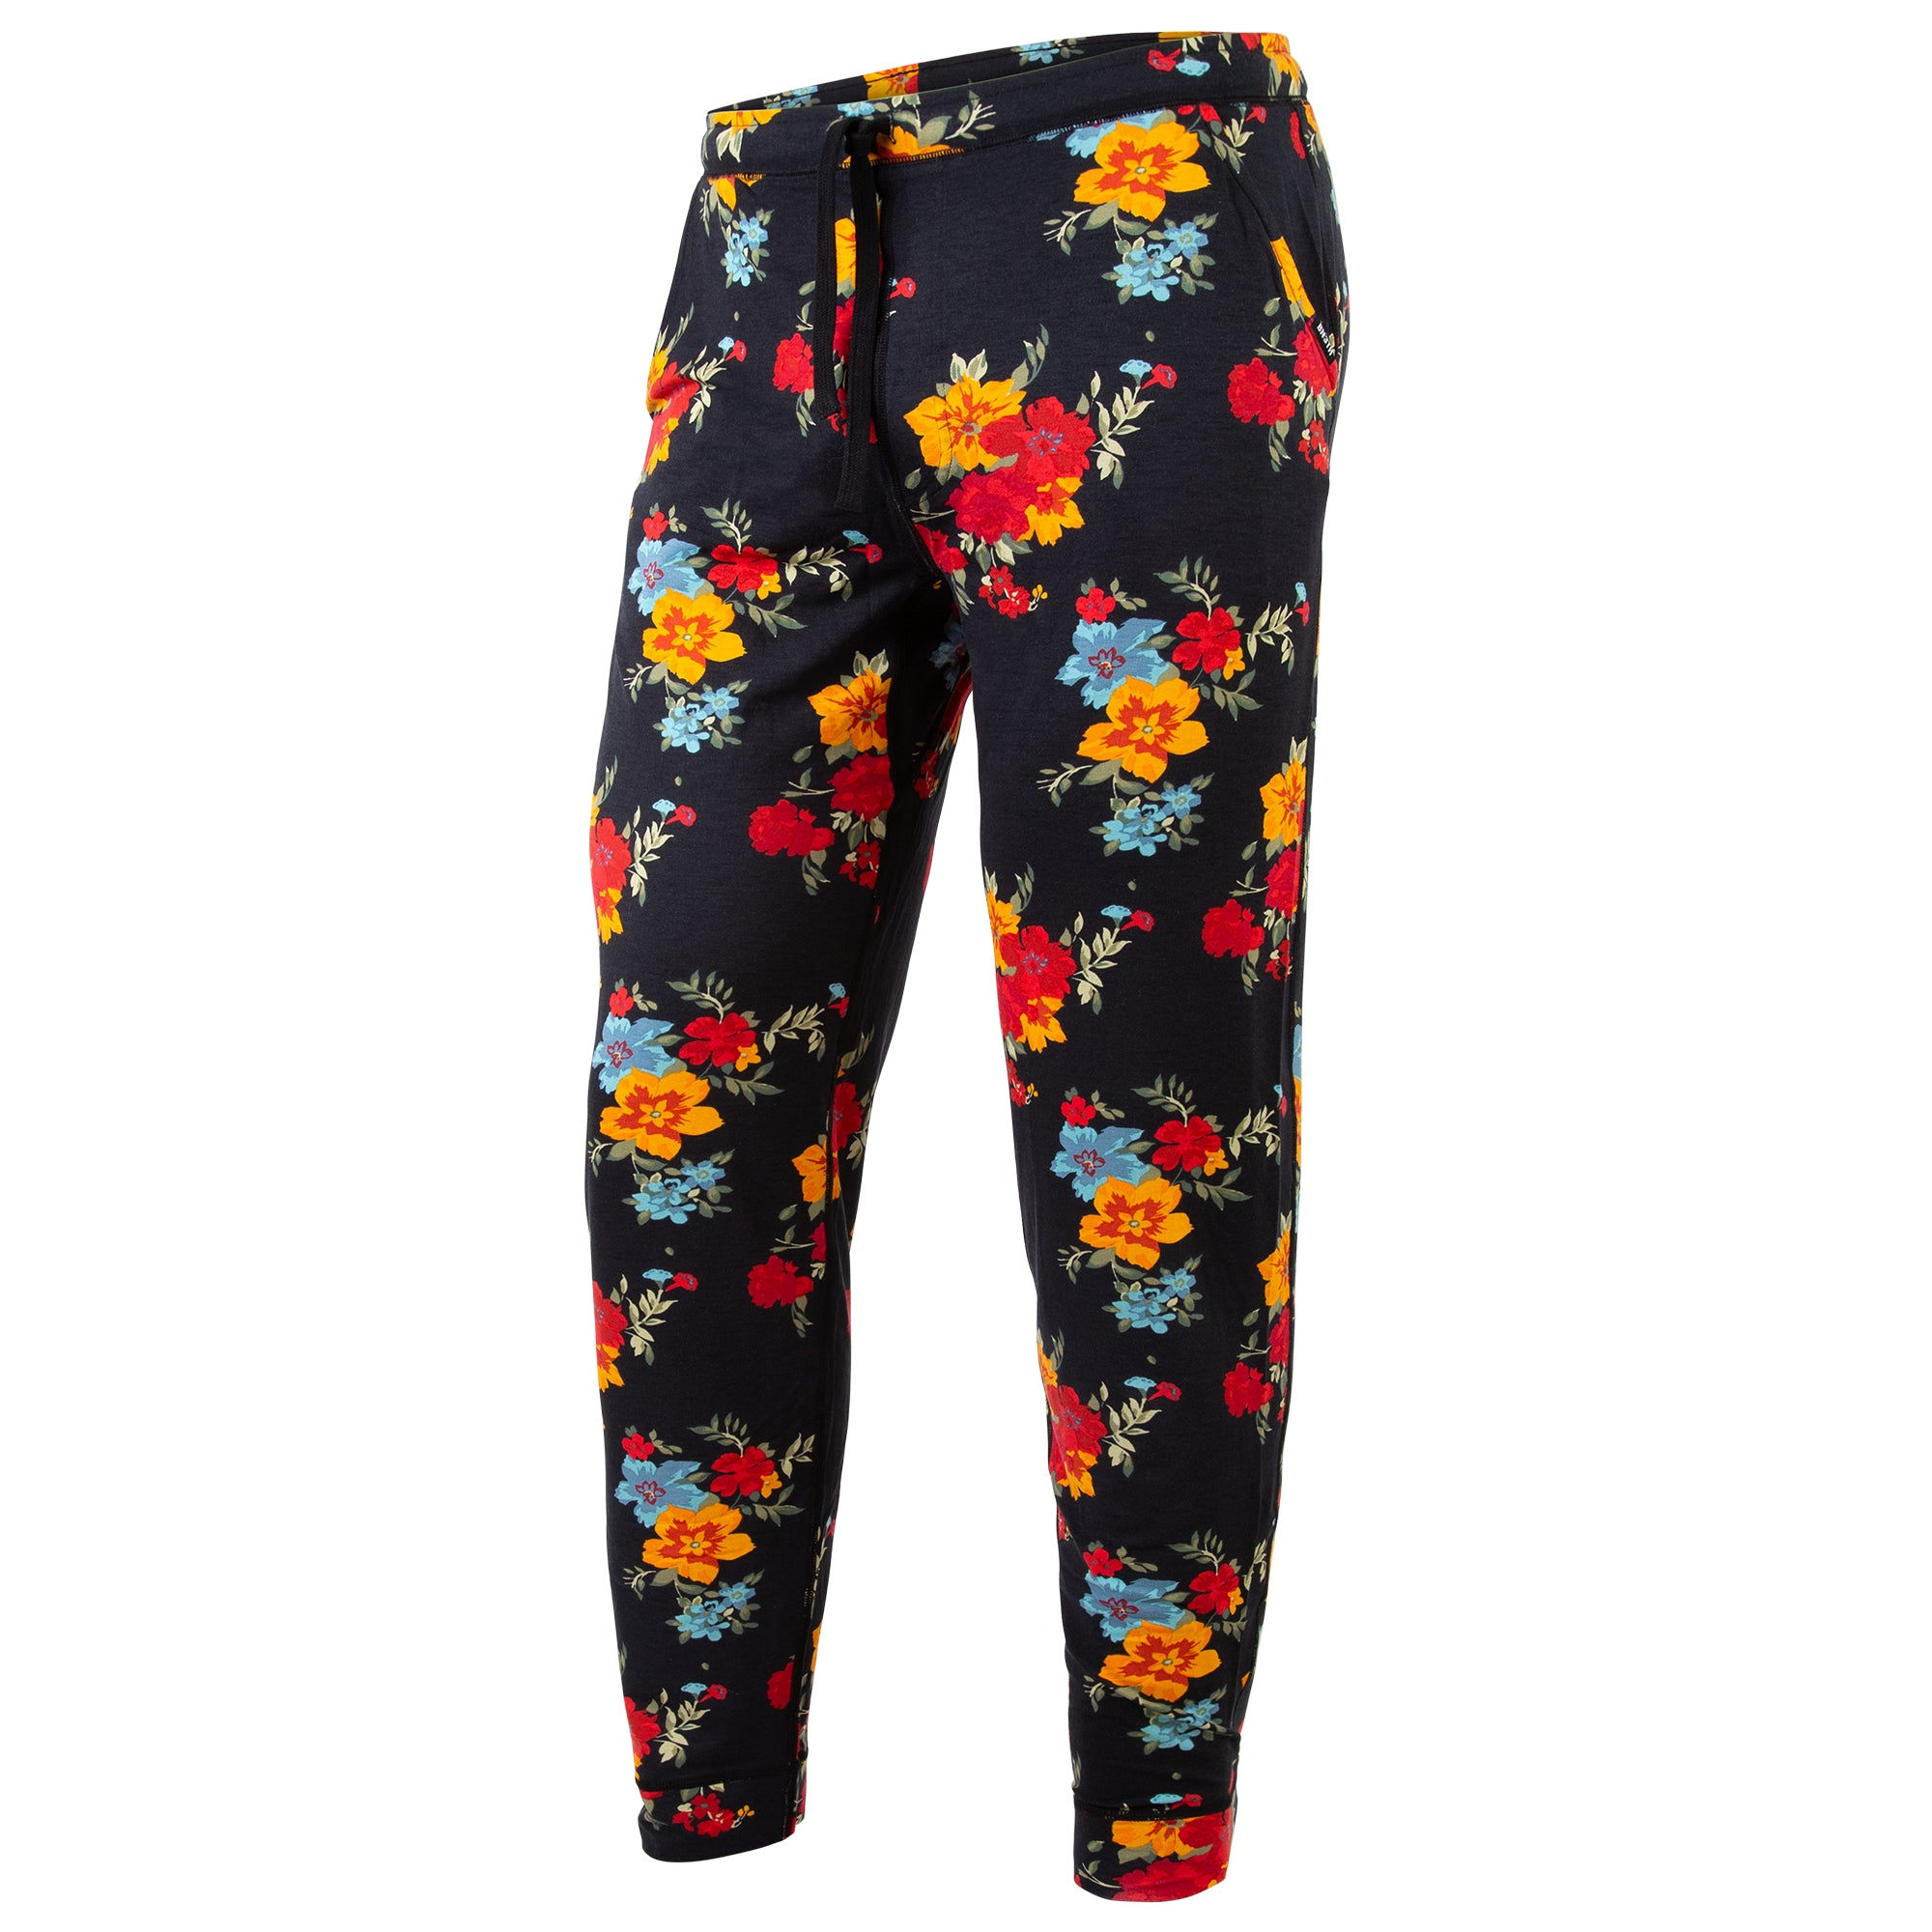 Pantalon de pyjama Bn3th arrangement